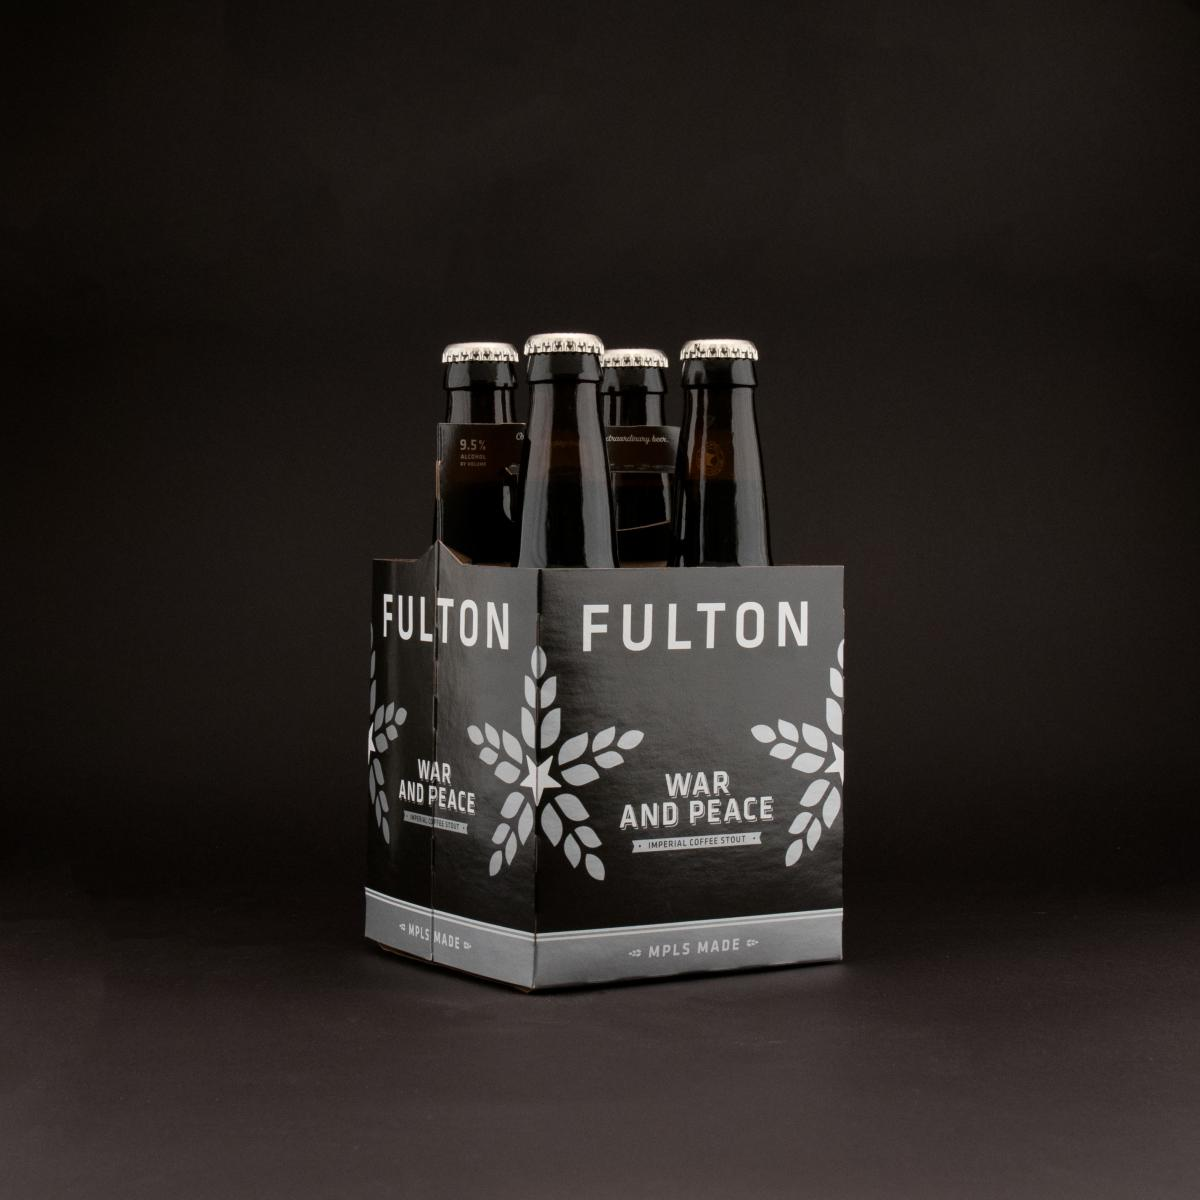 Fulton's Imperial Coffee Stout: War & Peace